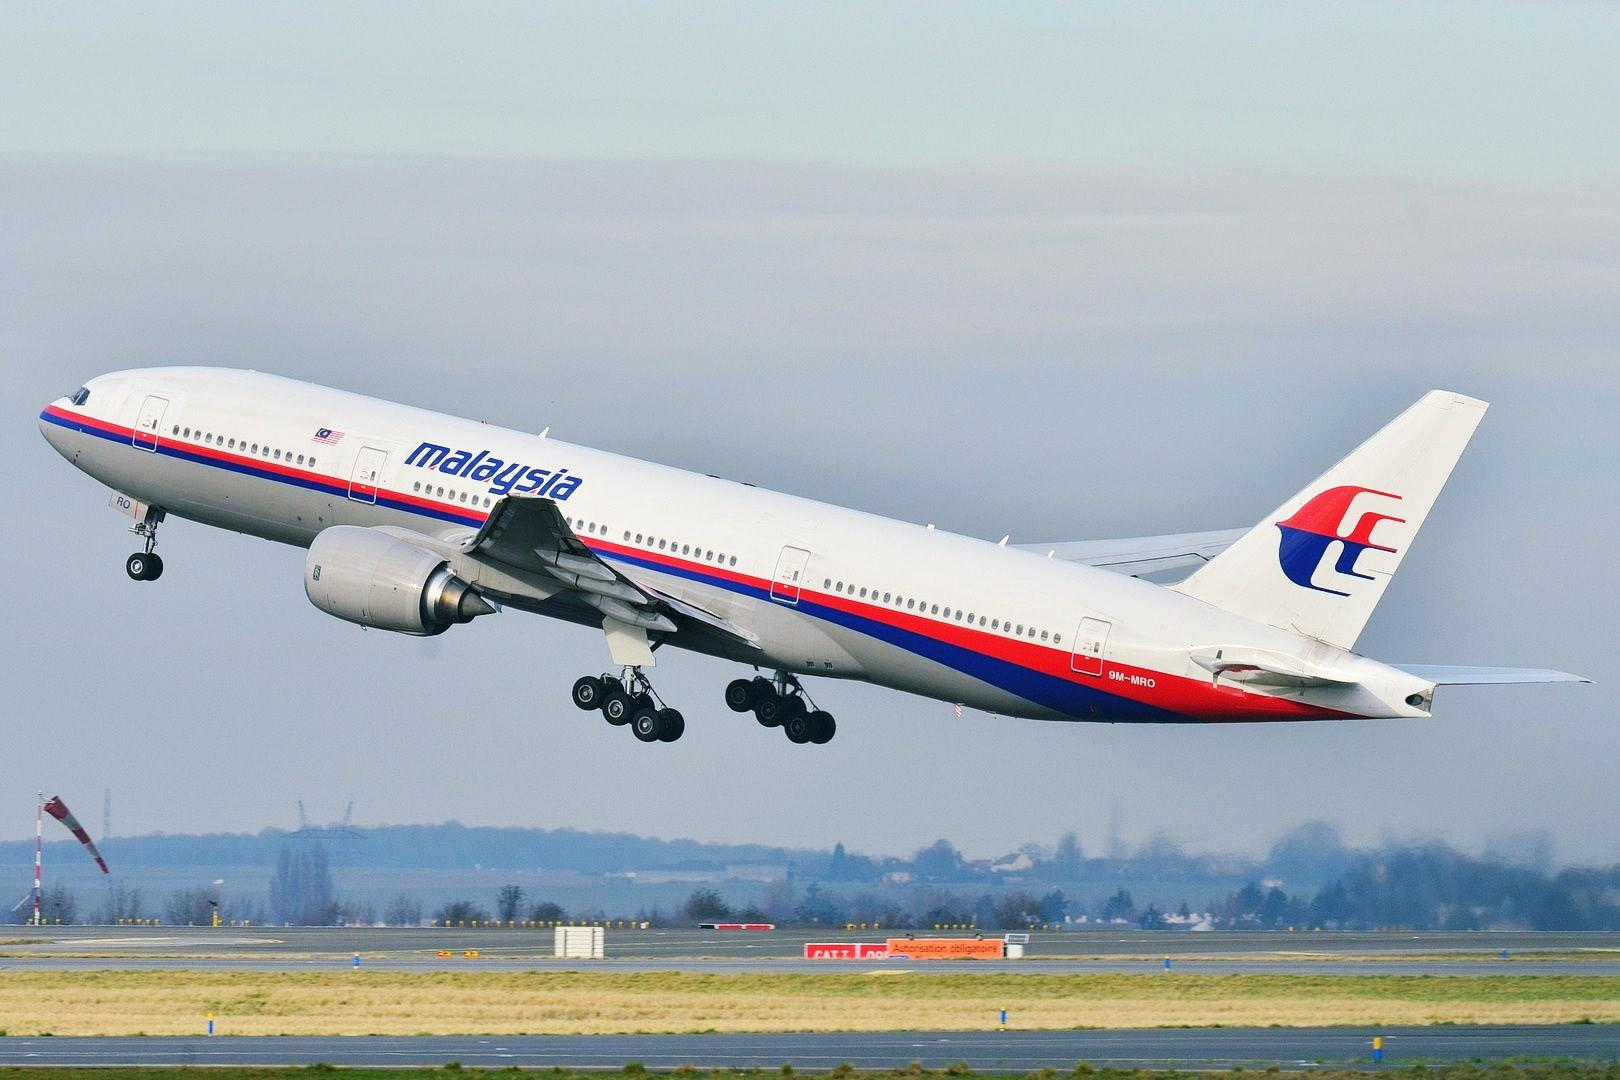 Malaysia's Missing Airlines plane